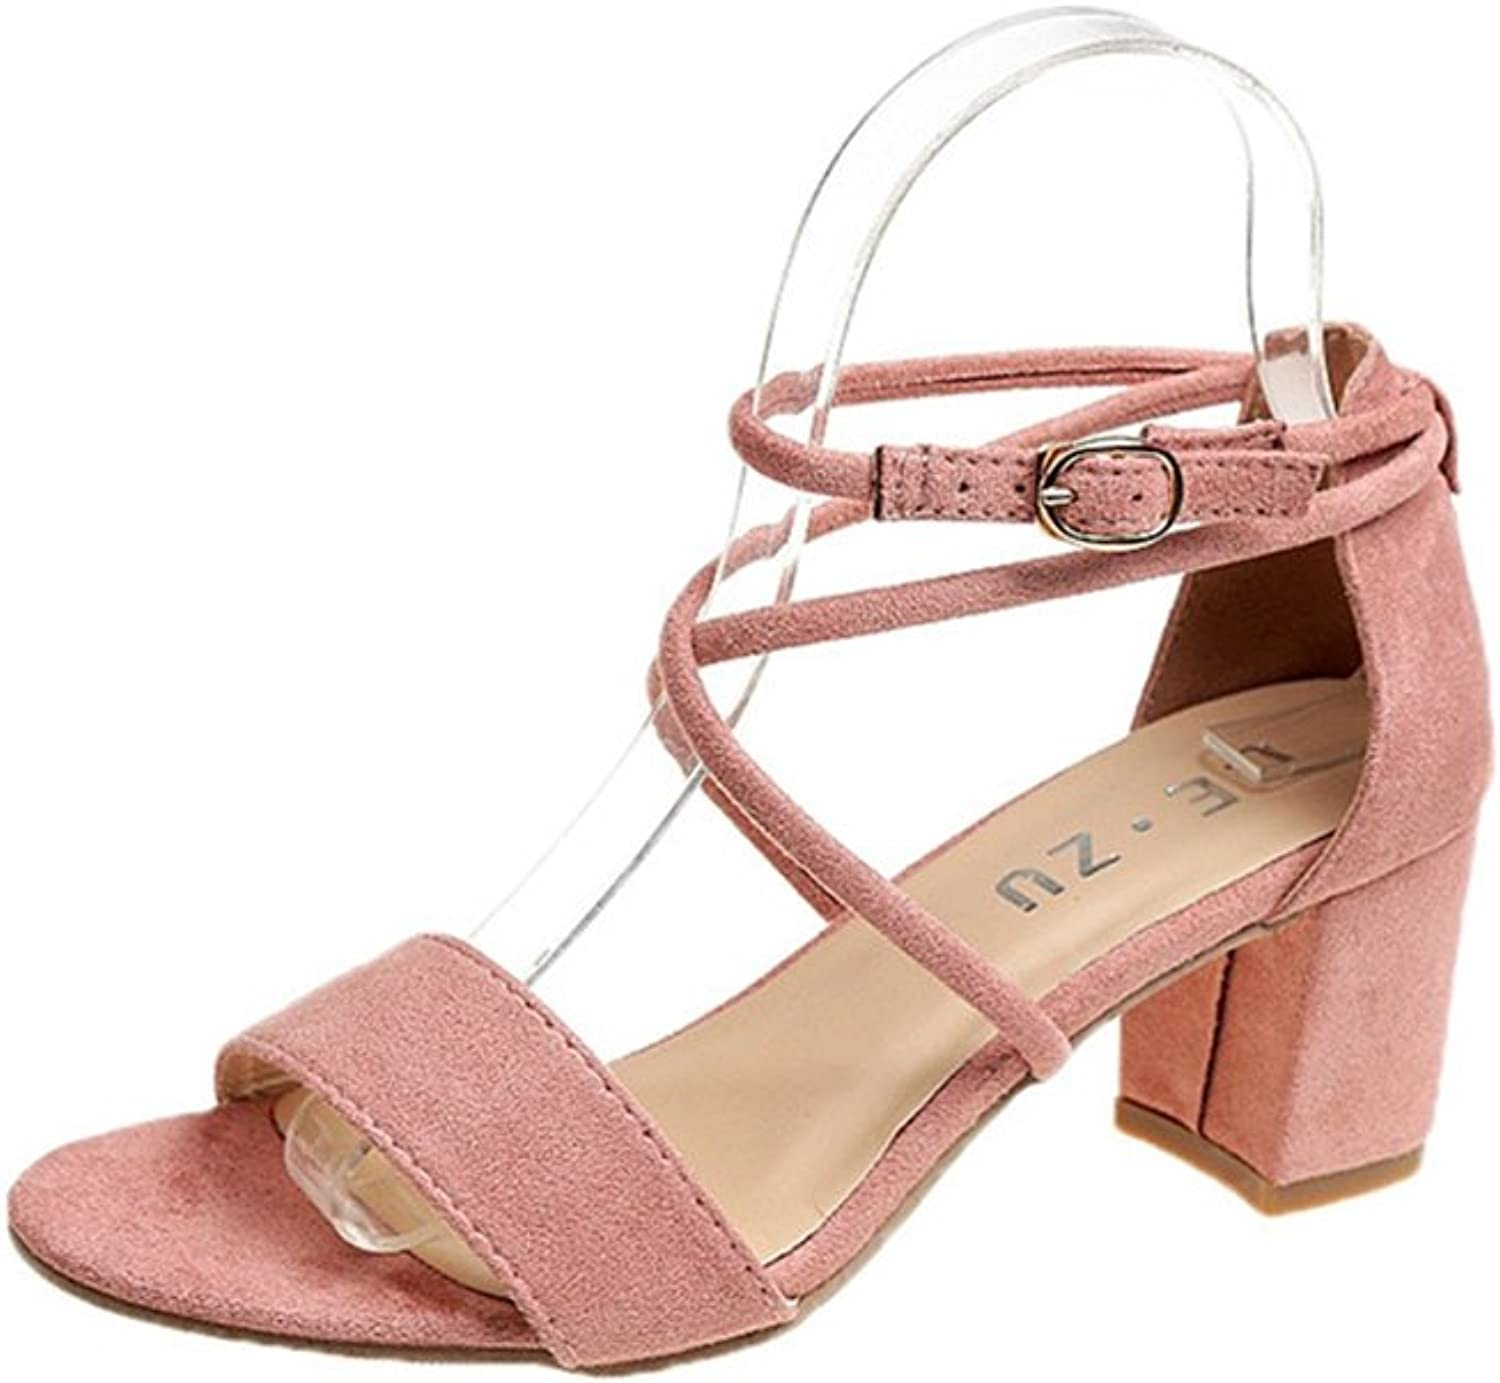 T-JULY Women's Suede Hollow Cross Strap Sandals Chunky Heel Ankle Strap Party Wedding Dress Open Toe Pumps shoes